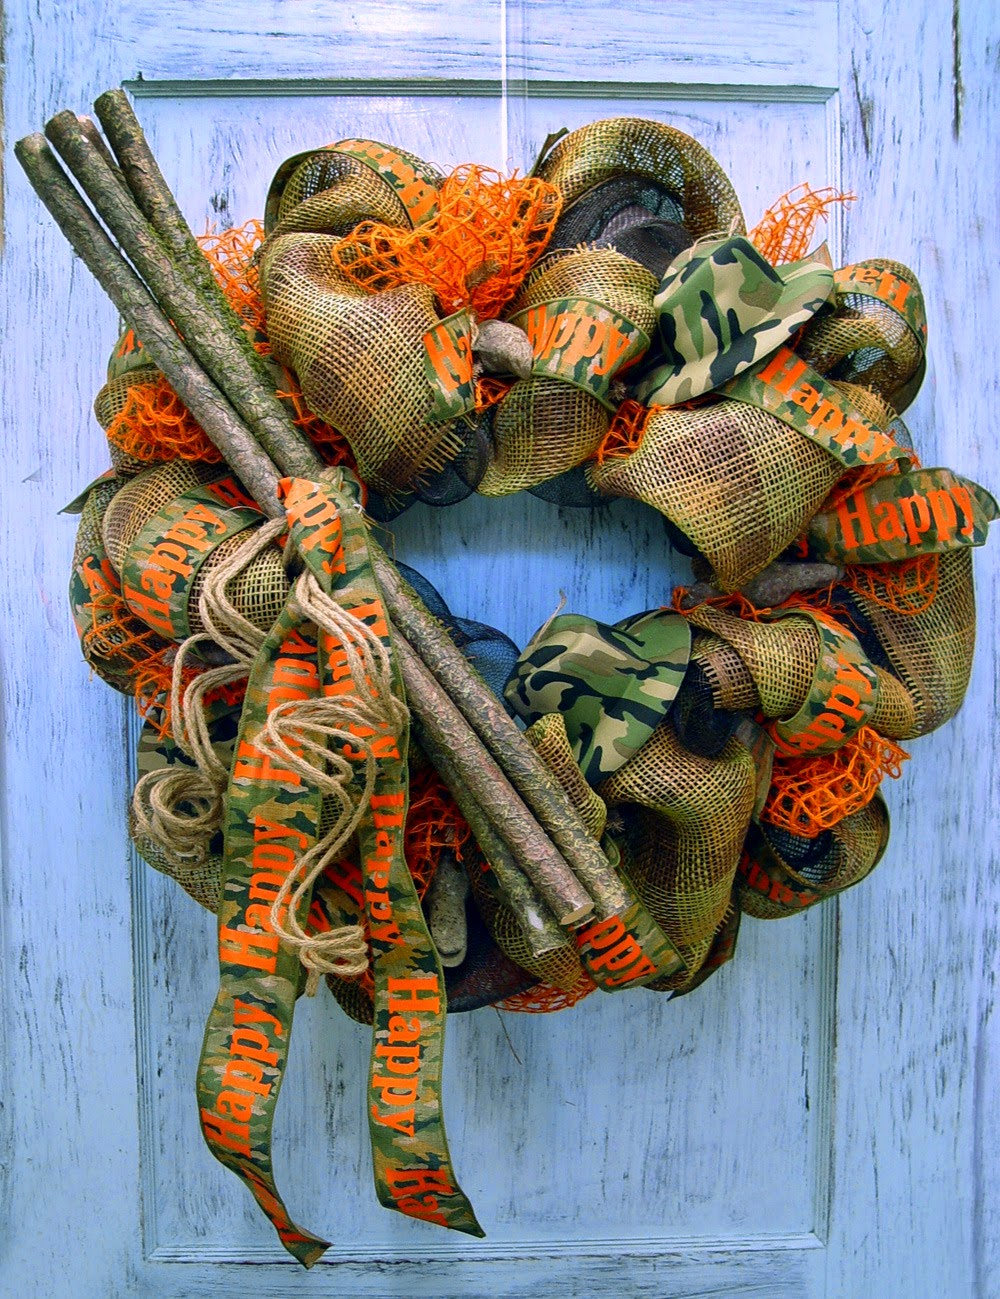 Camo Wreath using RAZ Twig Bundle